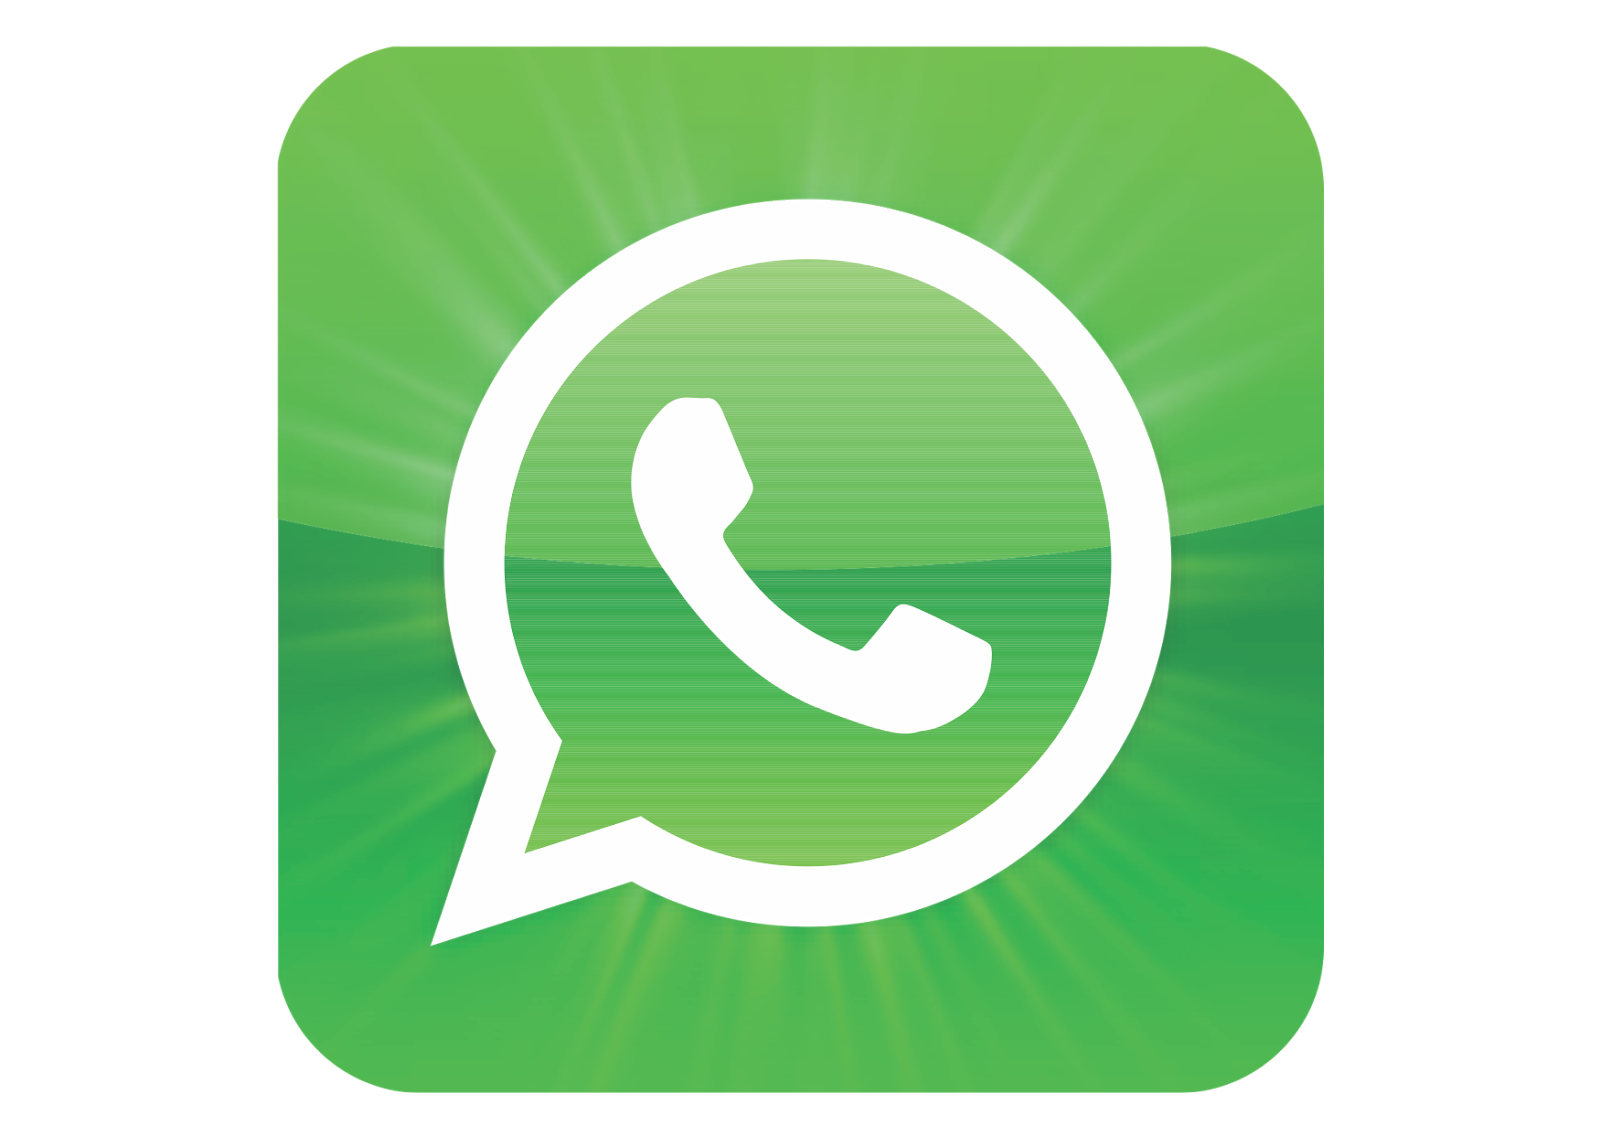 Logo Whatsapp Cdr Download Free Image PNG Image